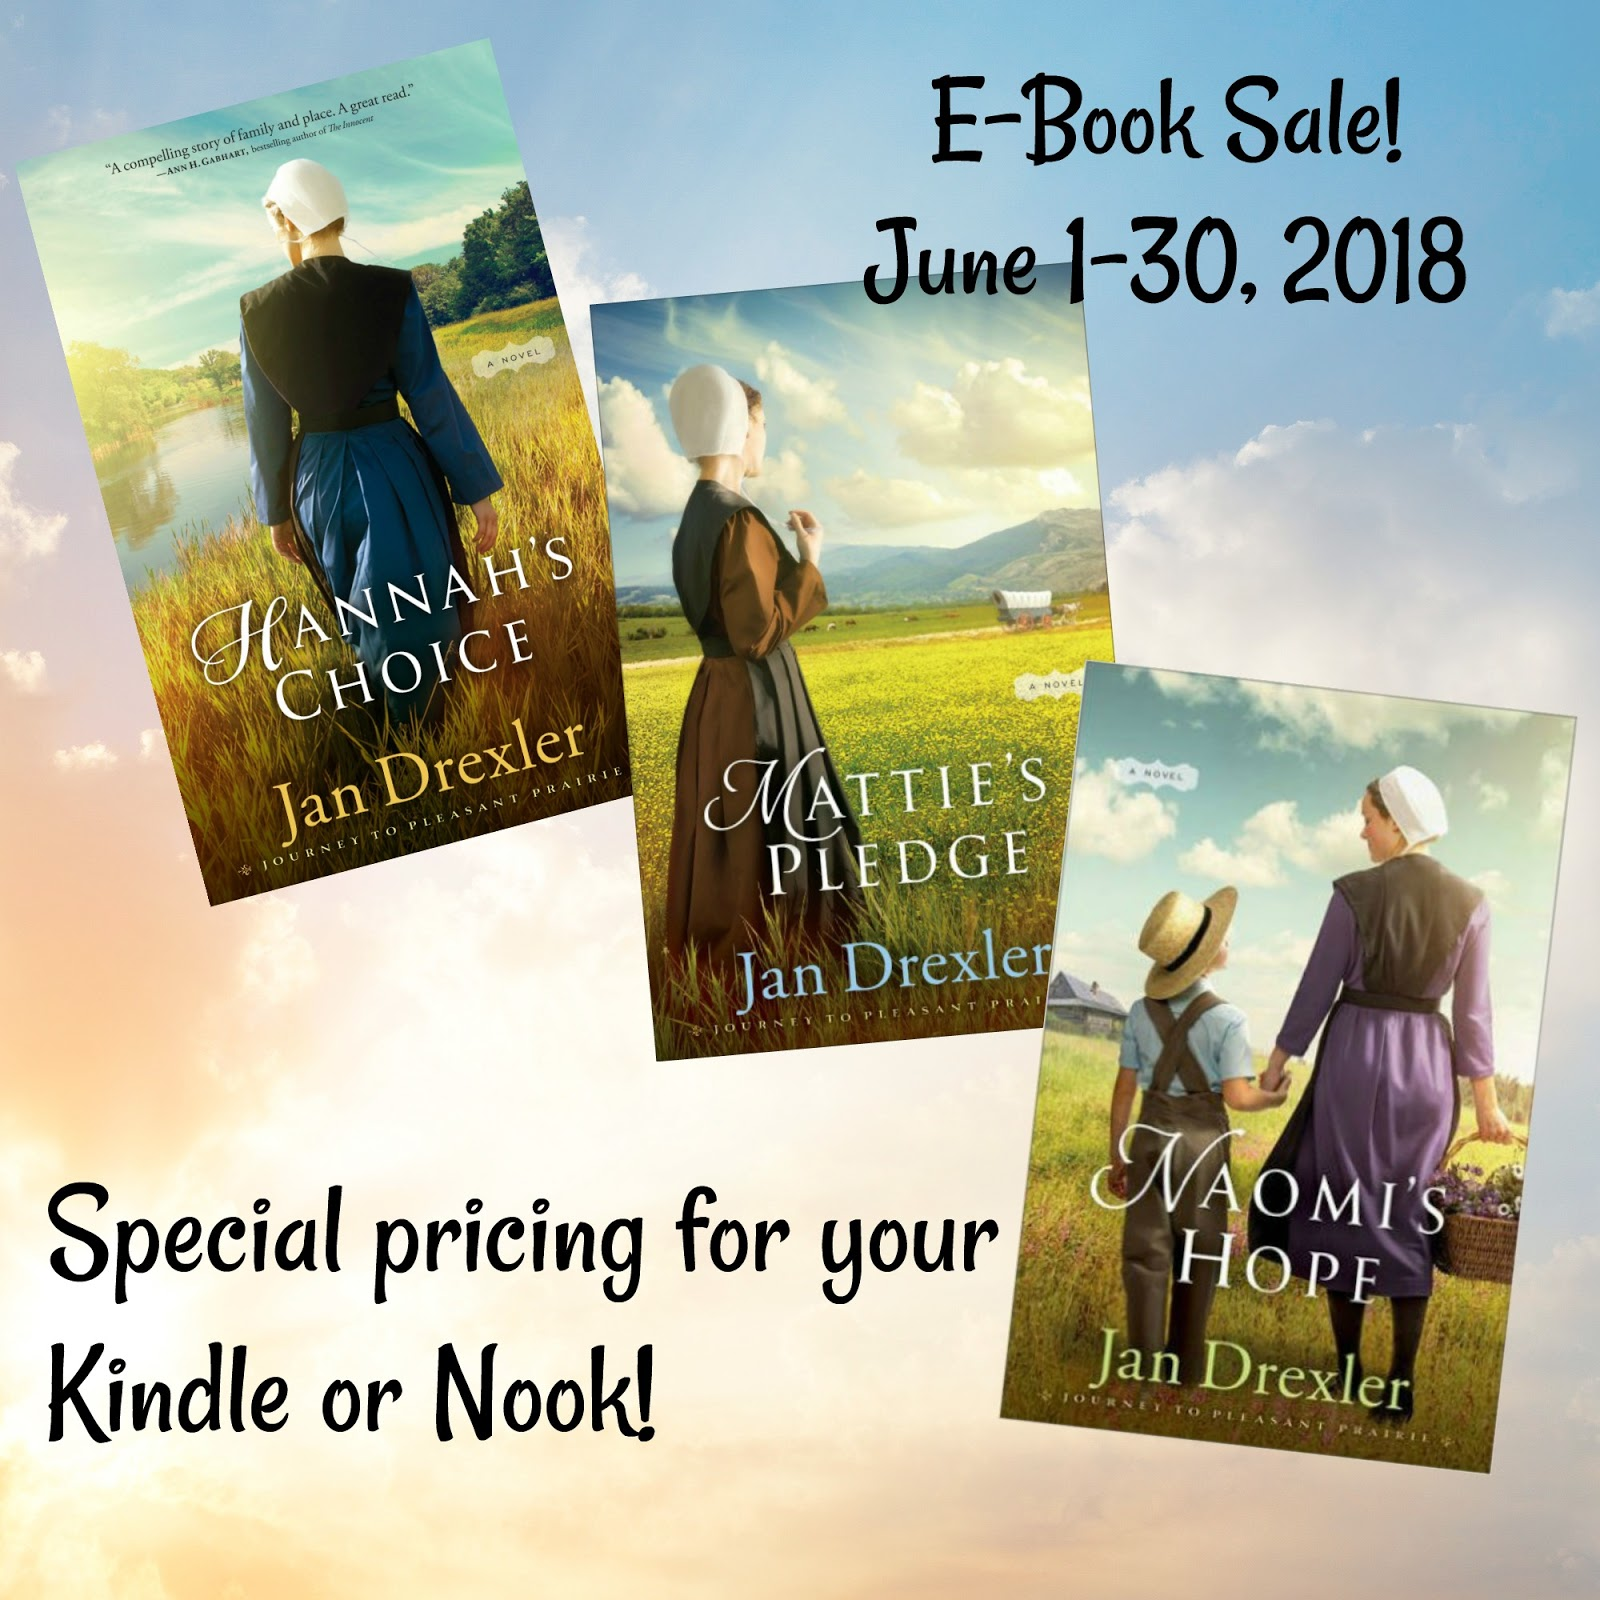 Jan Drexler's The Journey to Pleasant Prairie series from Revell is still  on sale in E-book format! How long will the sale prices last?